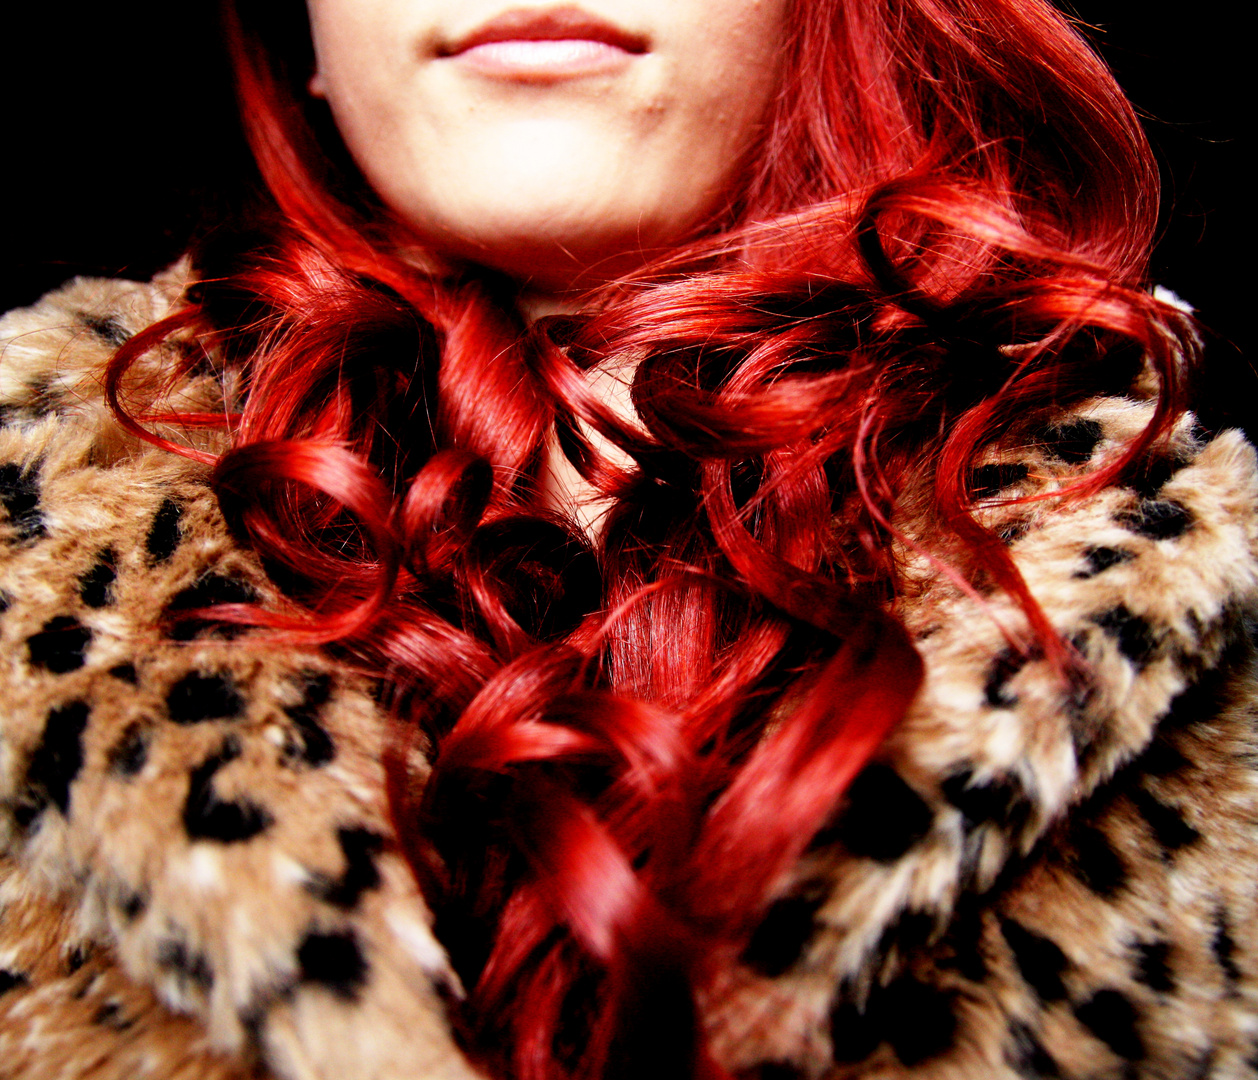 Rote Haare...